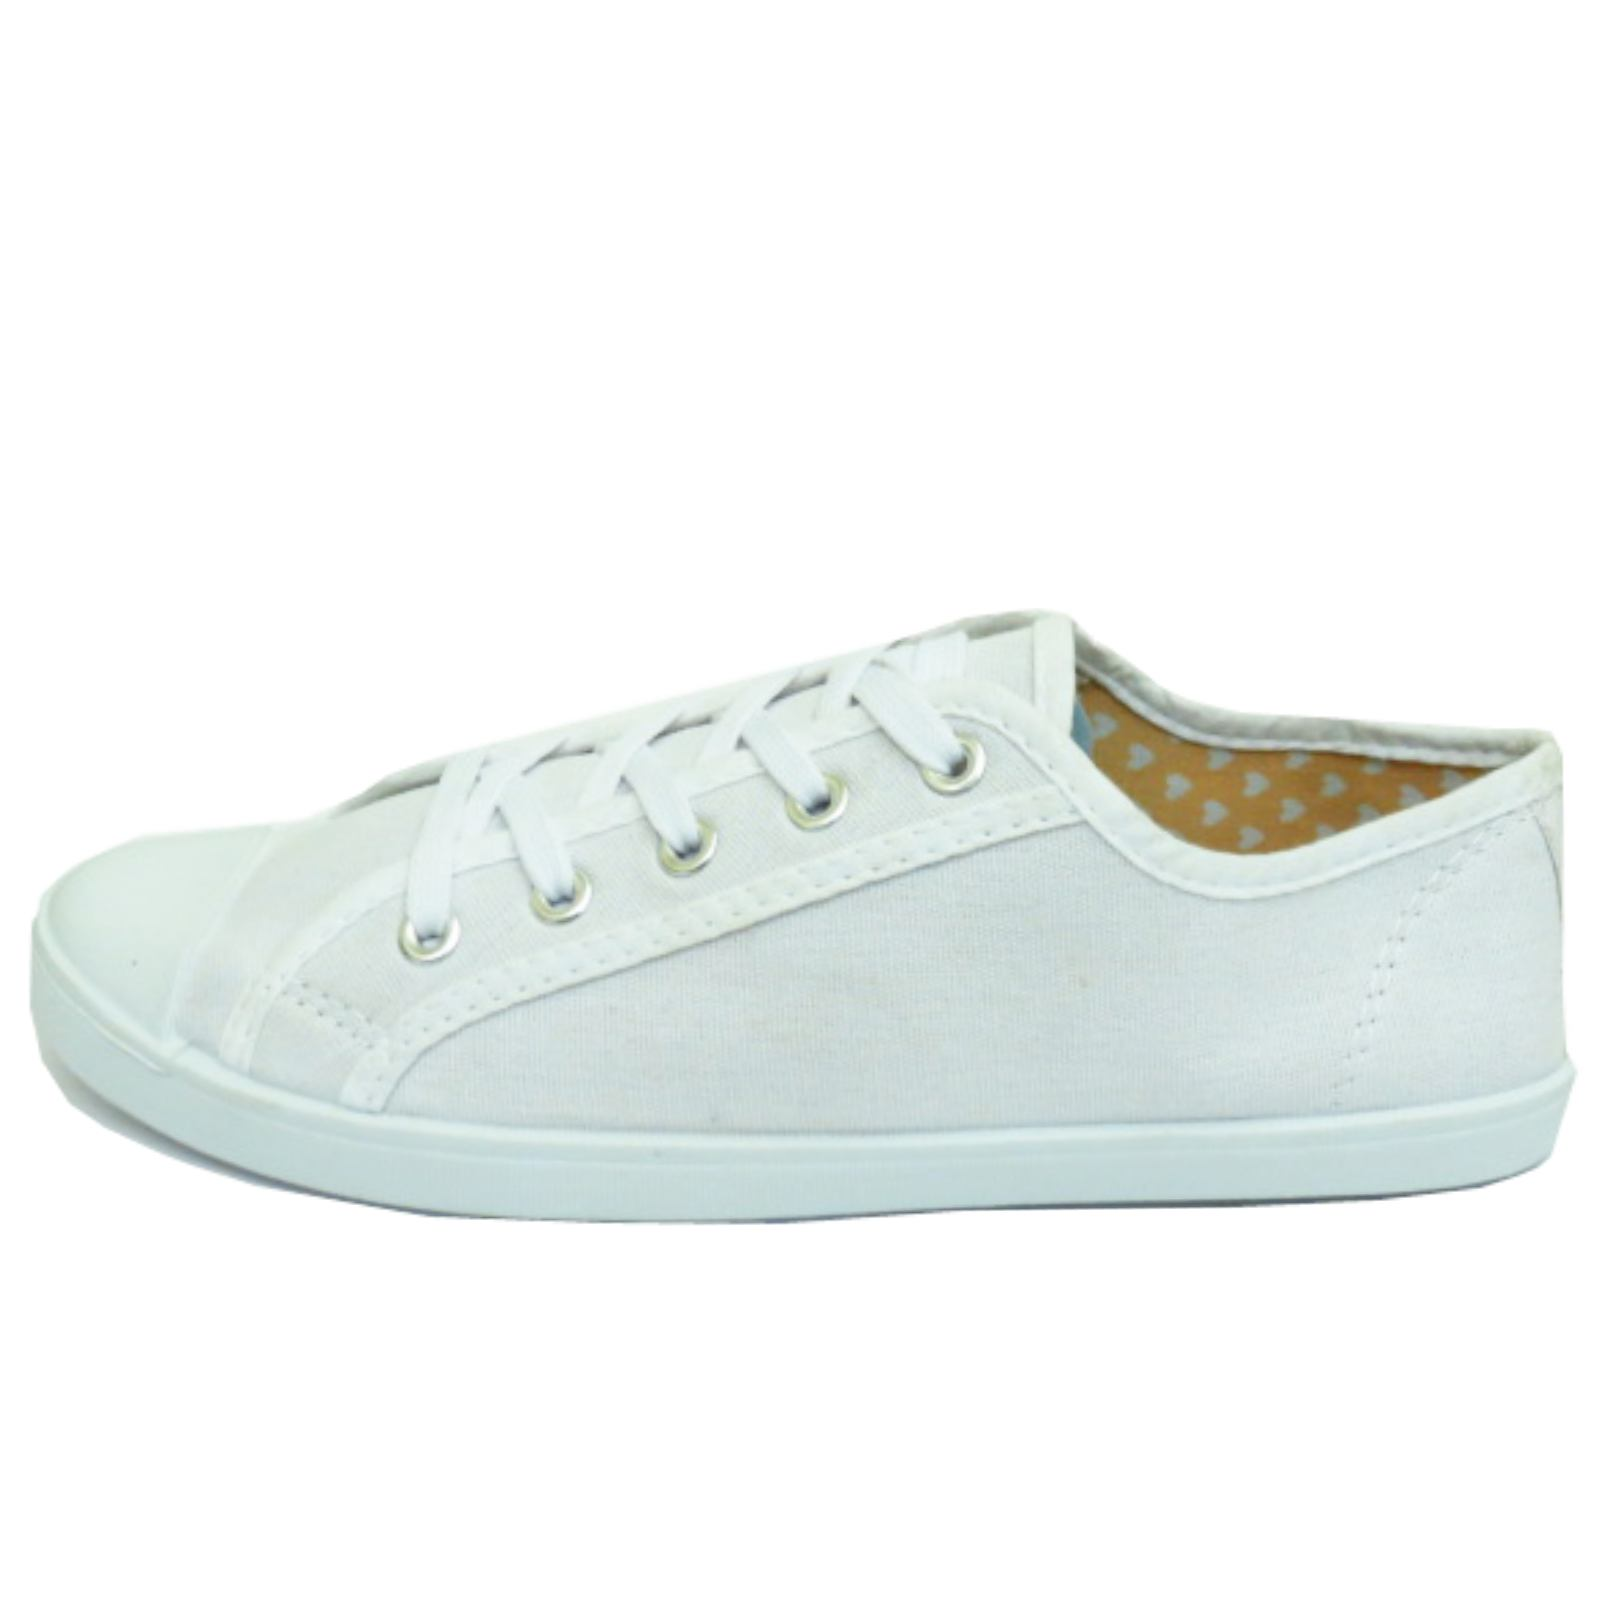 LADIES-WHITE-CANVAS-FLAT-LACE-UP-TRAINER-PLIMSOLL-PUMPS-CASUAL-SHOES-SIZES-3-9 thumbnail 6